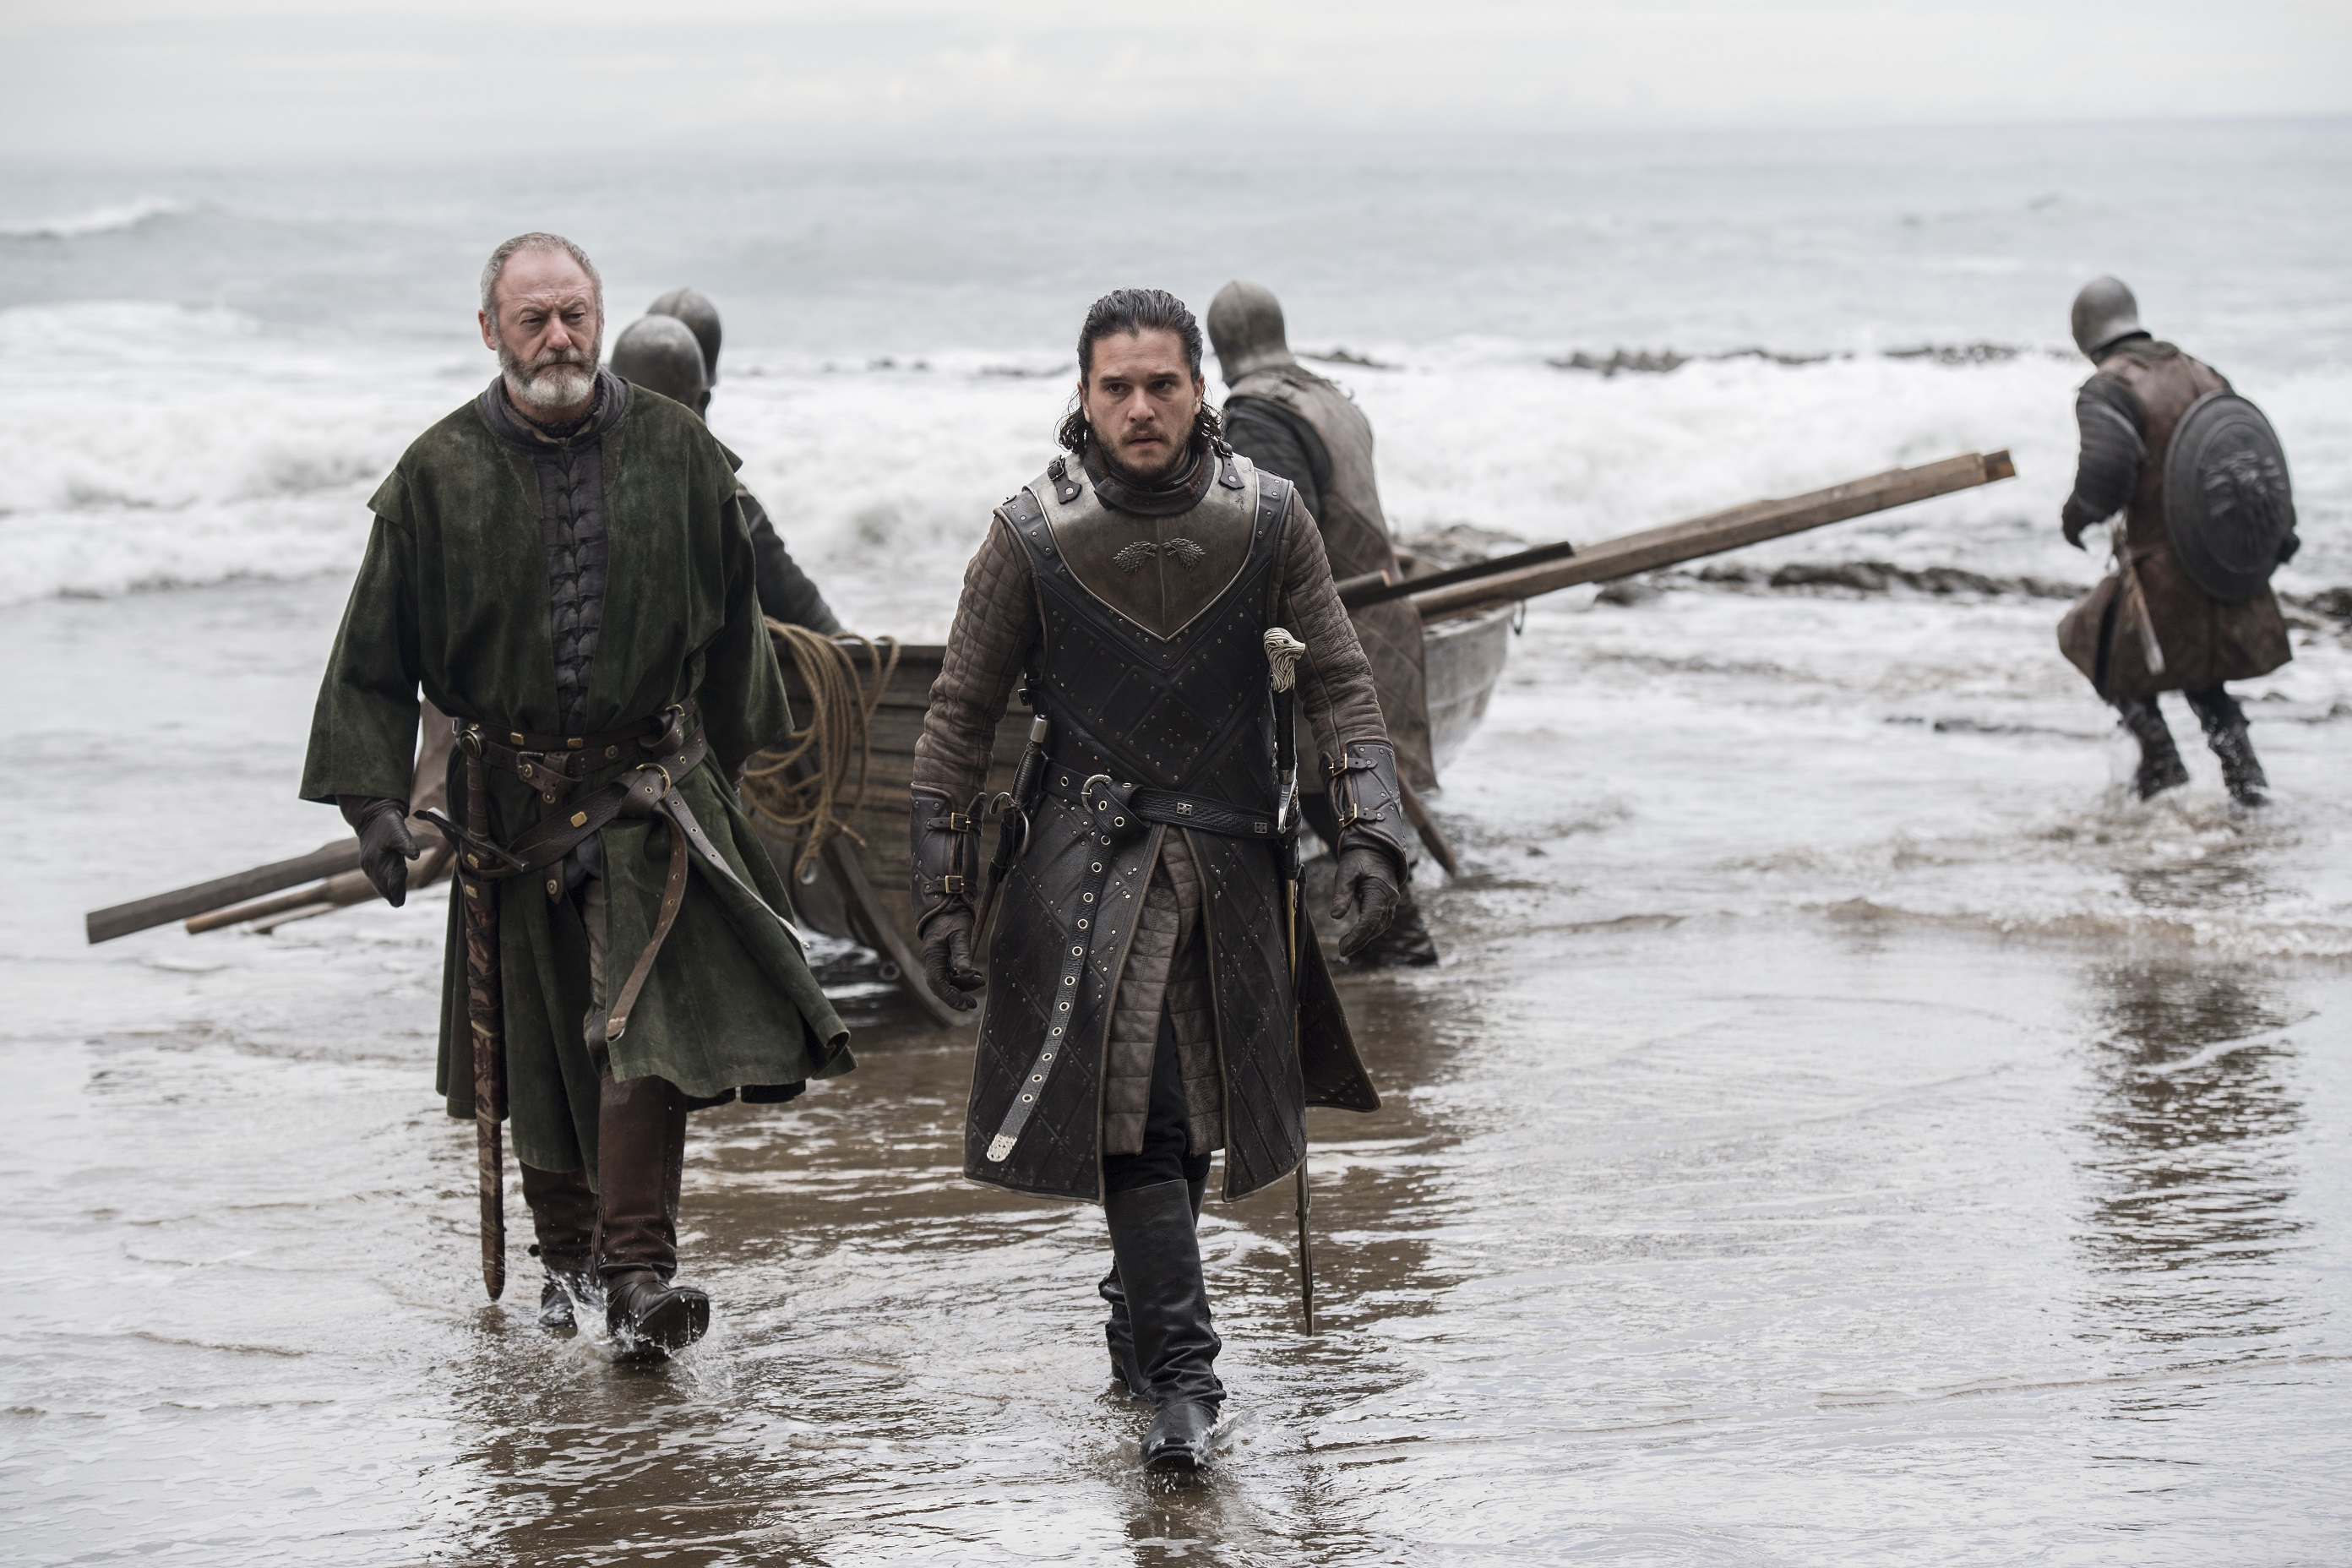 Kit Harington as Jon Snow and Liam Cunningham as Davos Seaworth. Photo: HBO